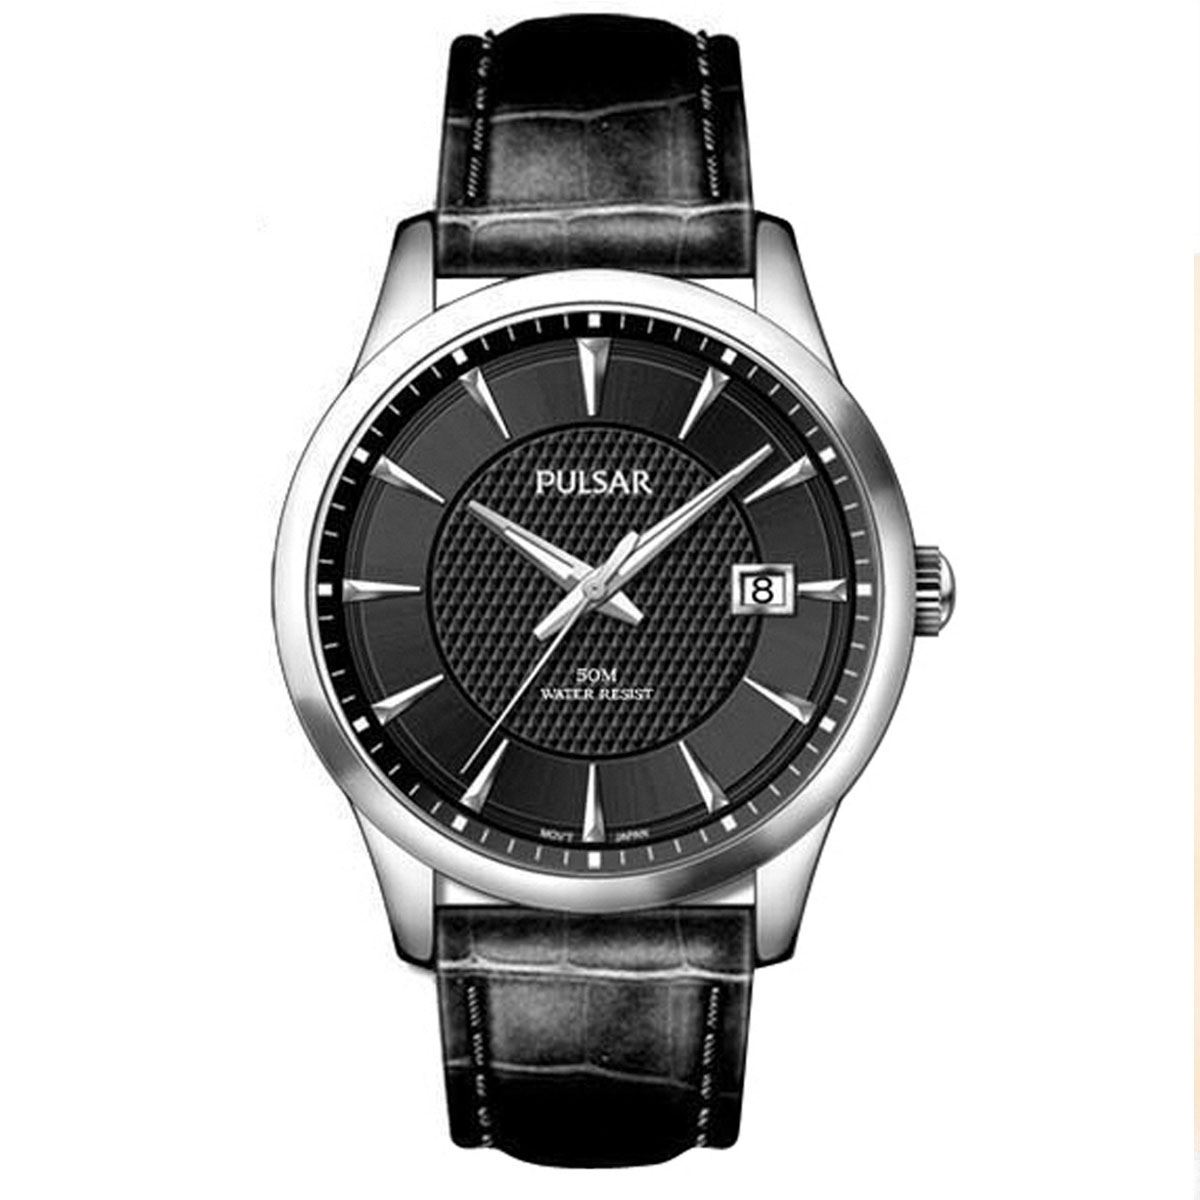 Pulsar-PS9031X1-Mens-Gents-Black-Leather-Strap-Analogue-Dress-Watch-New